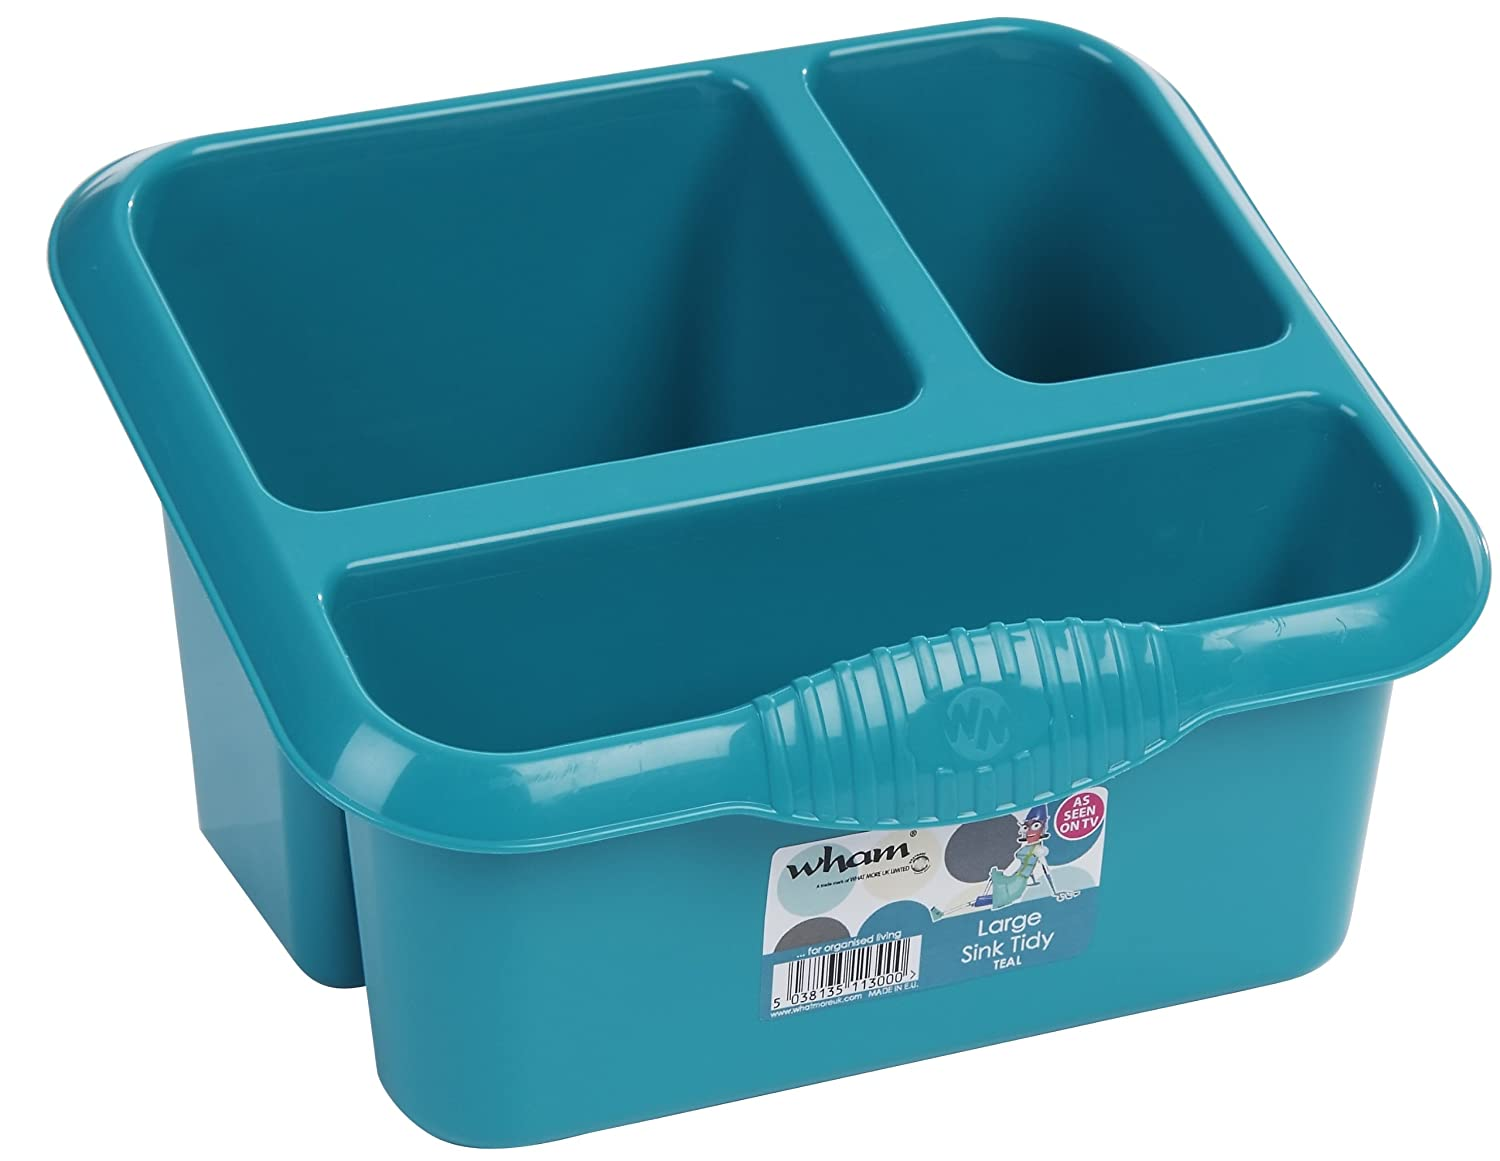 Teal Sink Tidy: Amazon.co.uk: Kitchen & Home